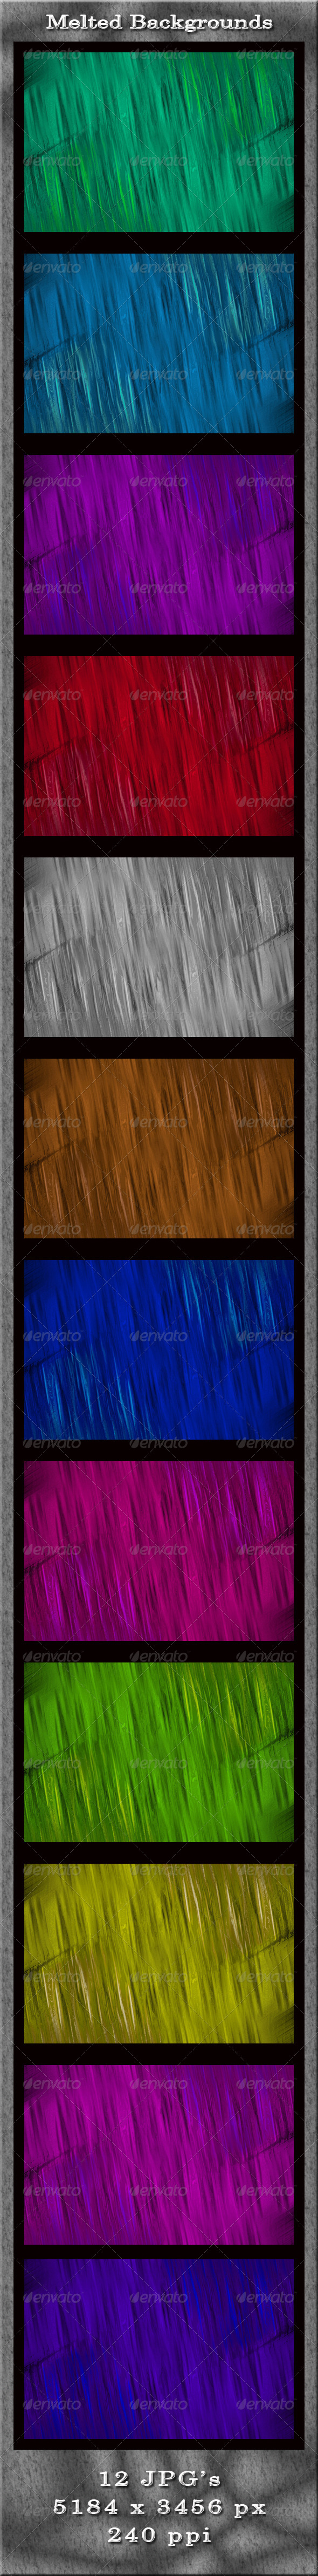 GraphicRiver Melted Backgrounds 4896166